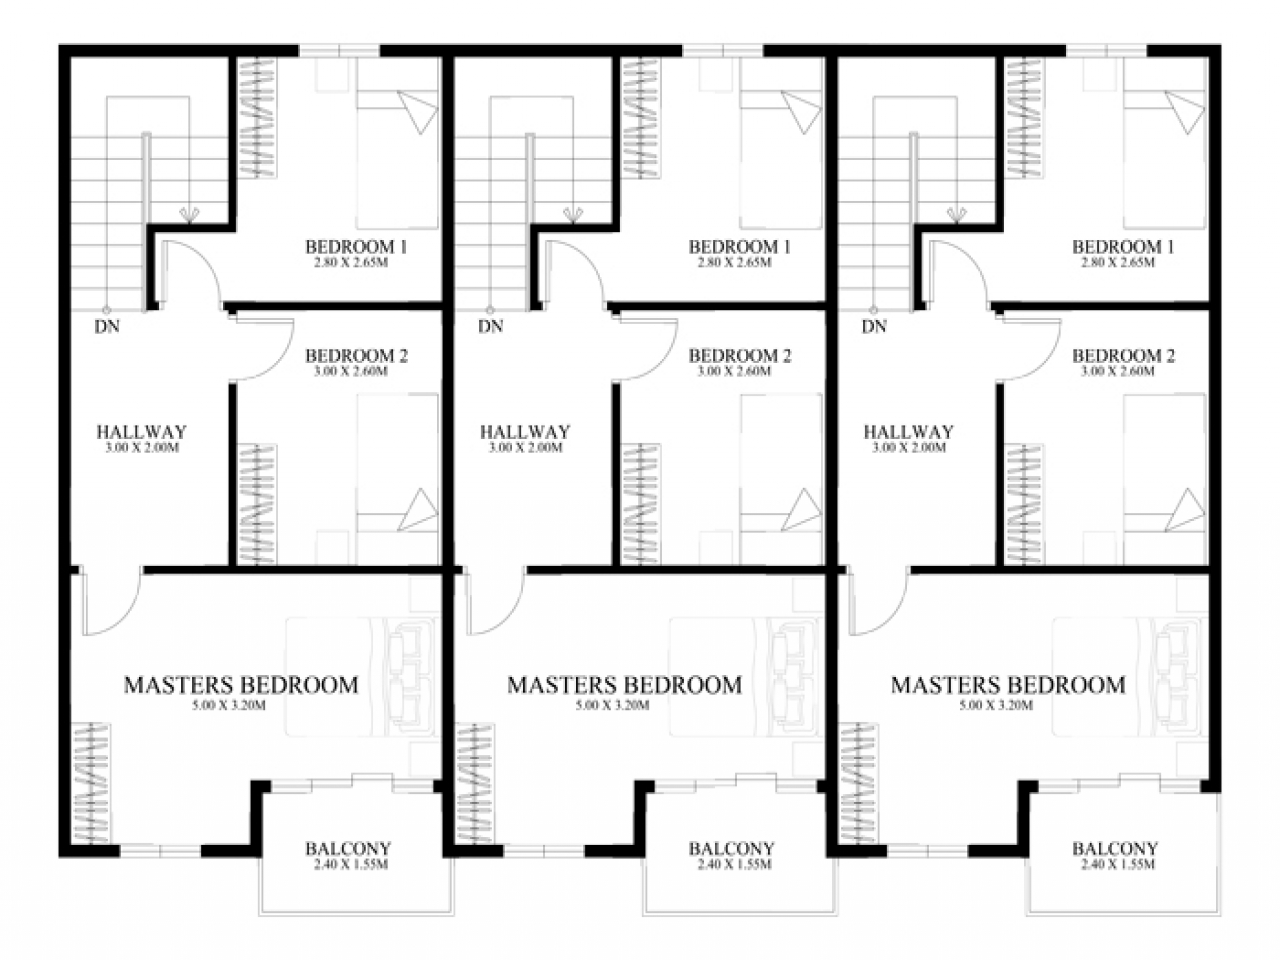 3 Story Floor Plans: Townhouse Floor Plan Designs 3-Story Townhouse Floor Plans